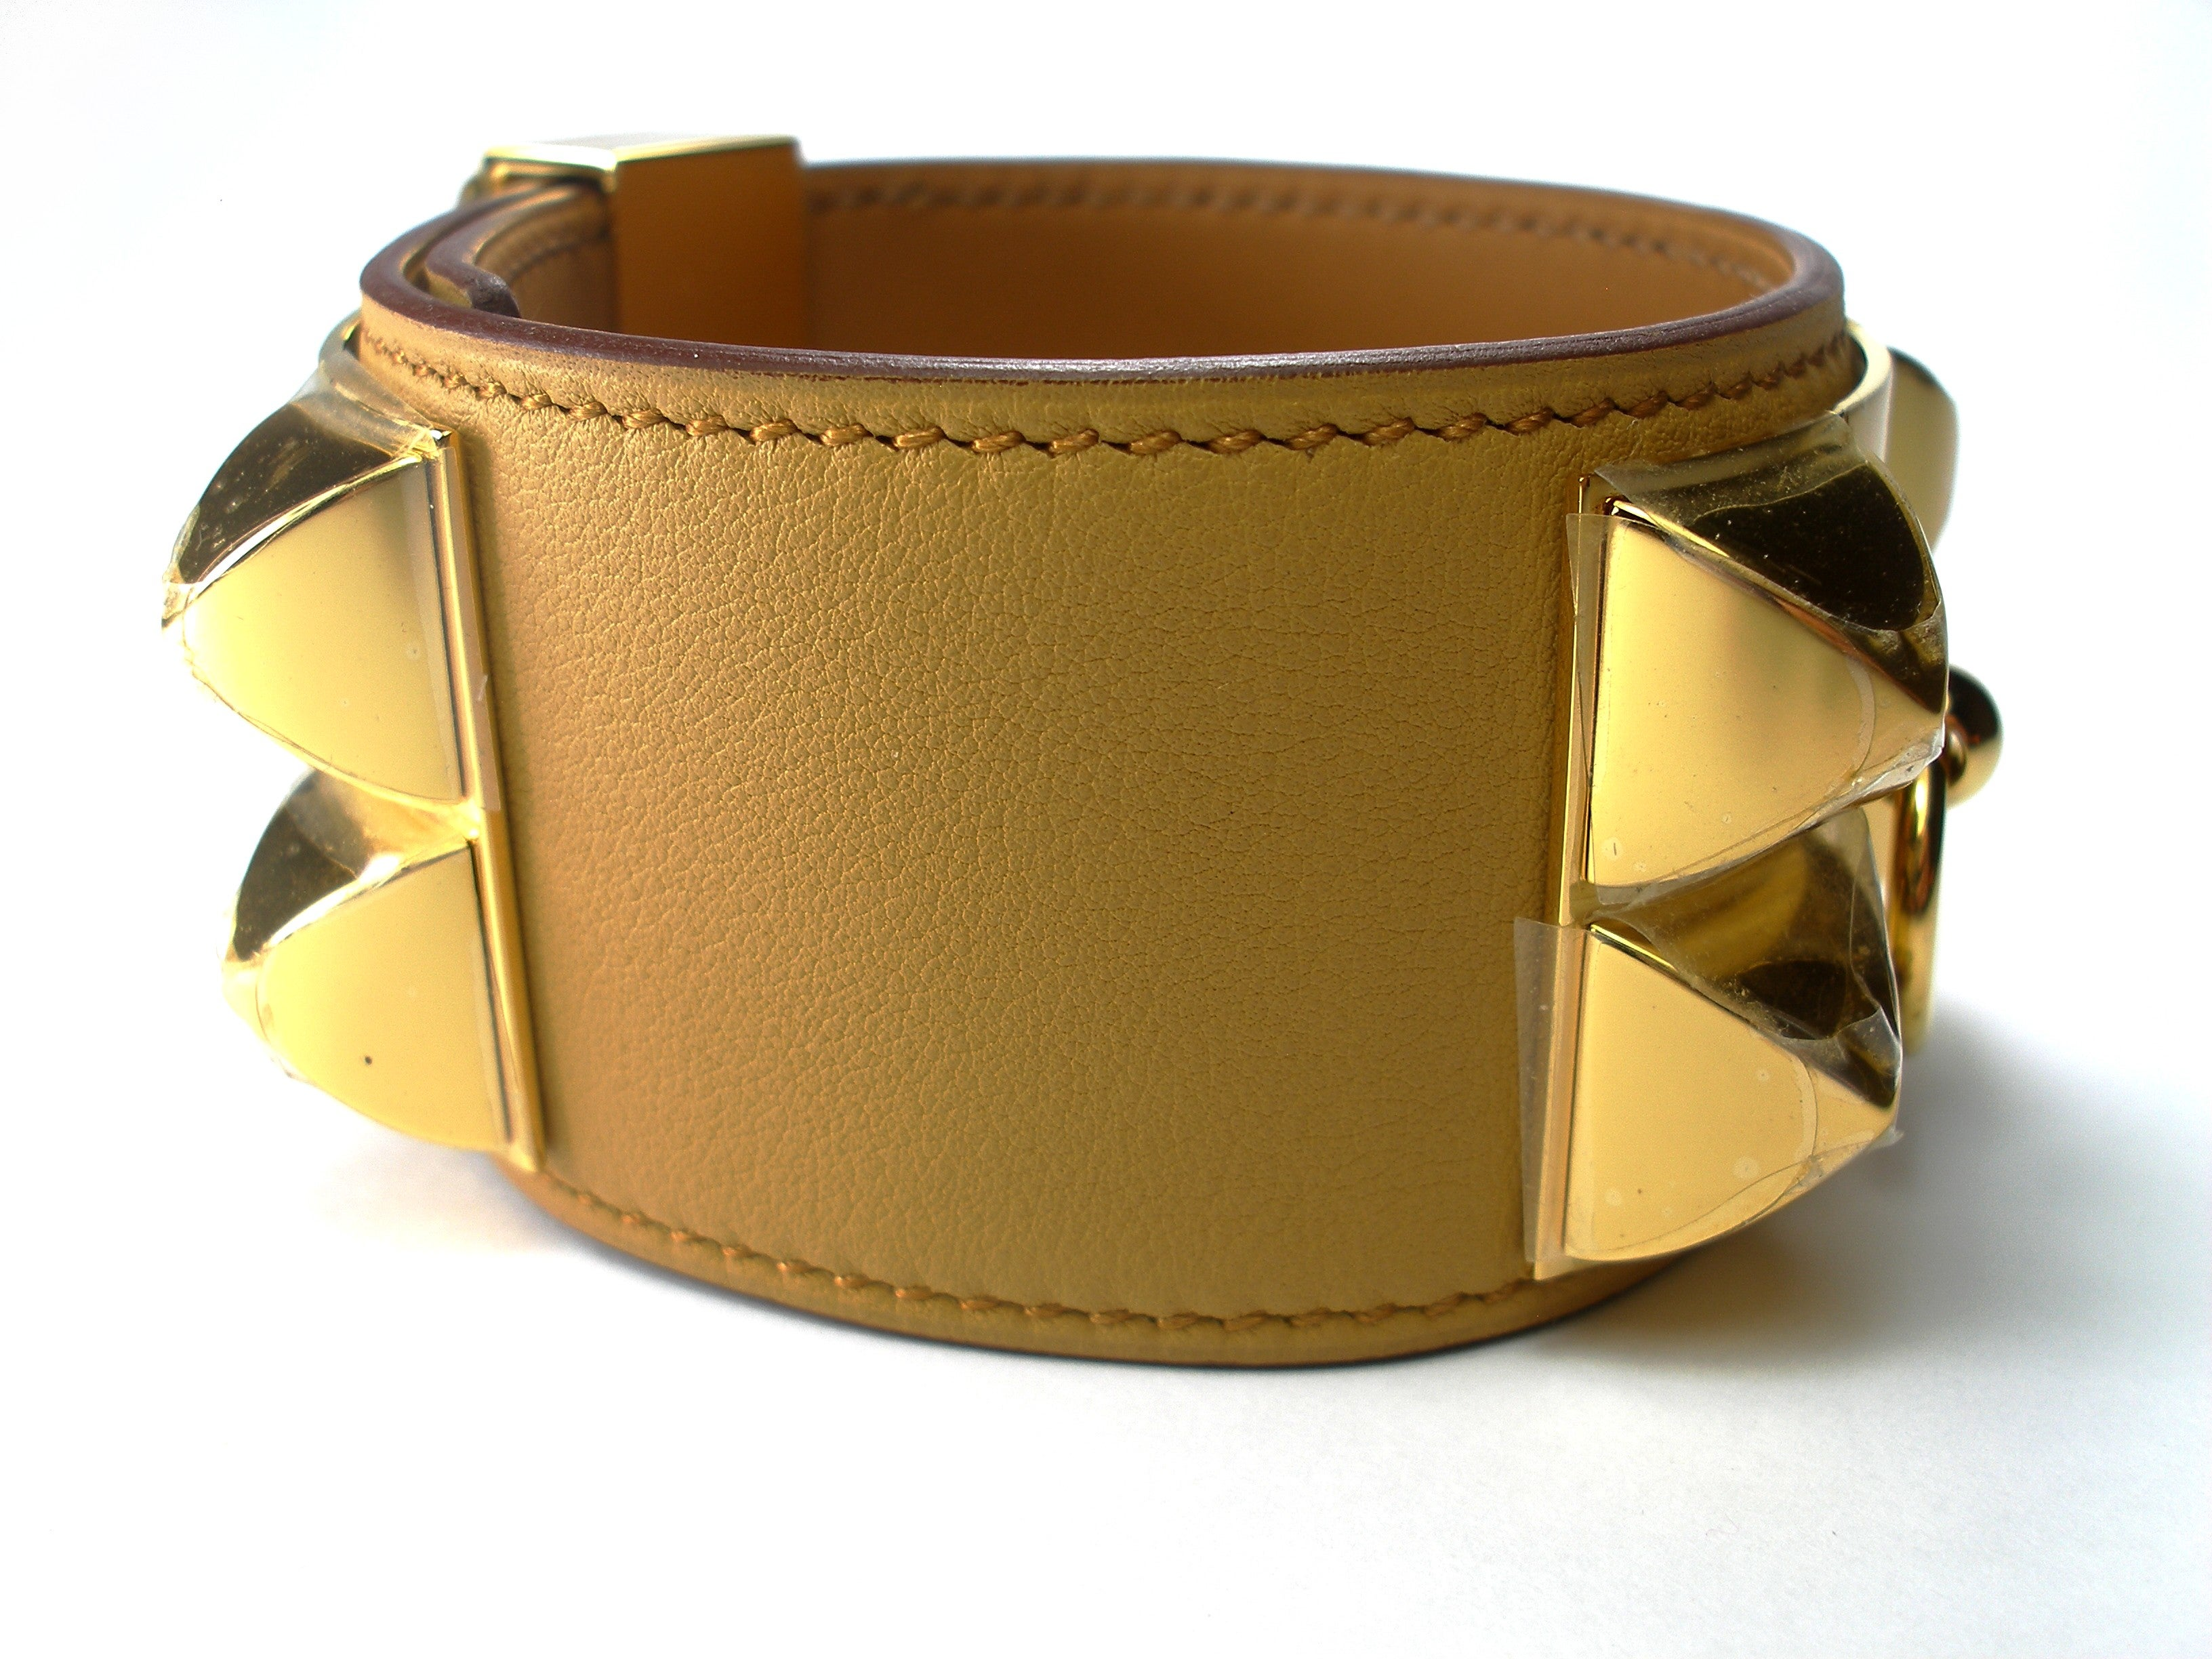 handbags veau bracelet s swift herm collier de leather luxury chien accessories an orange csk